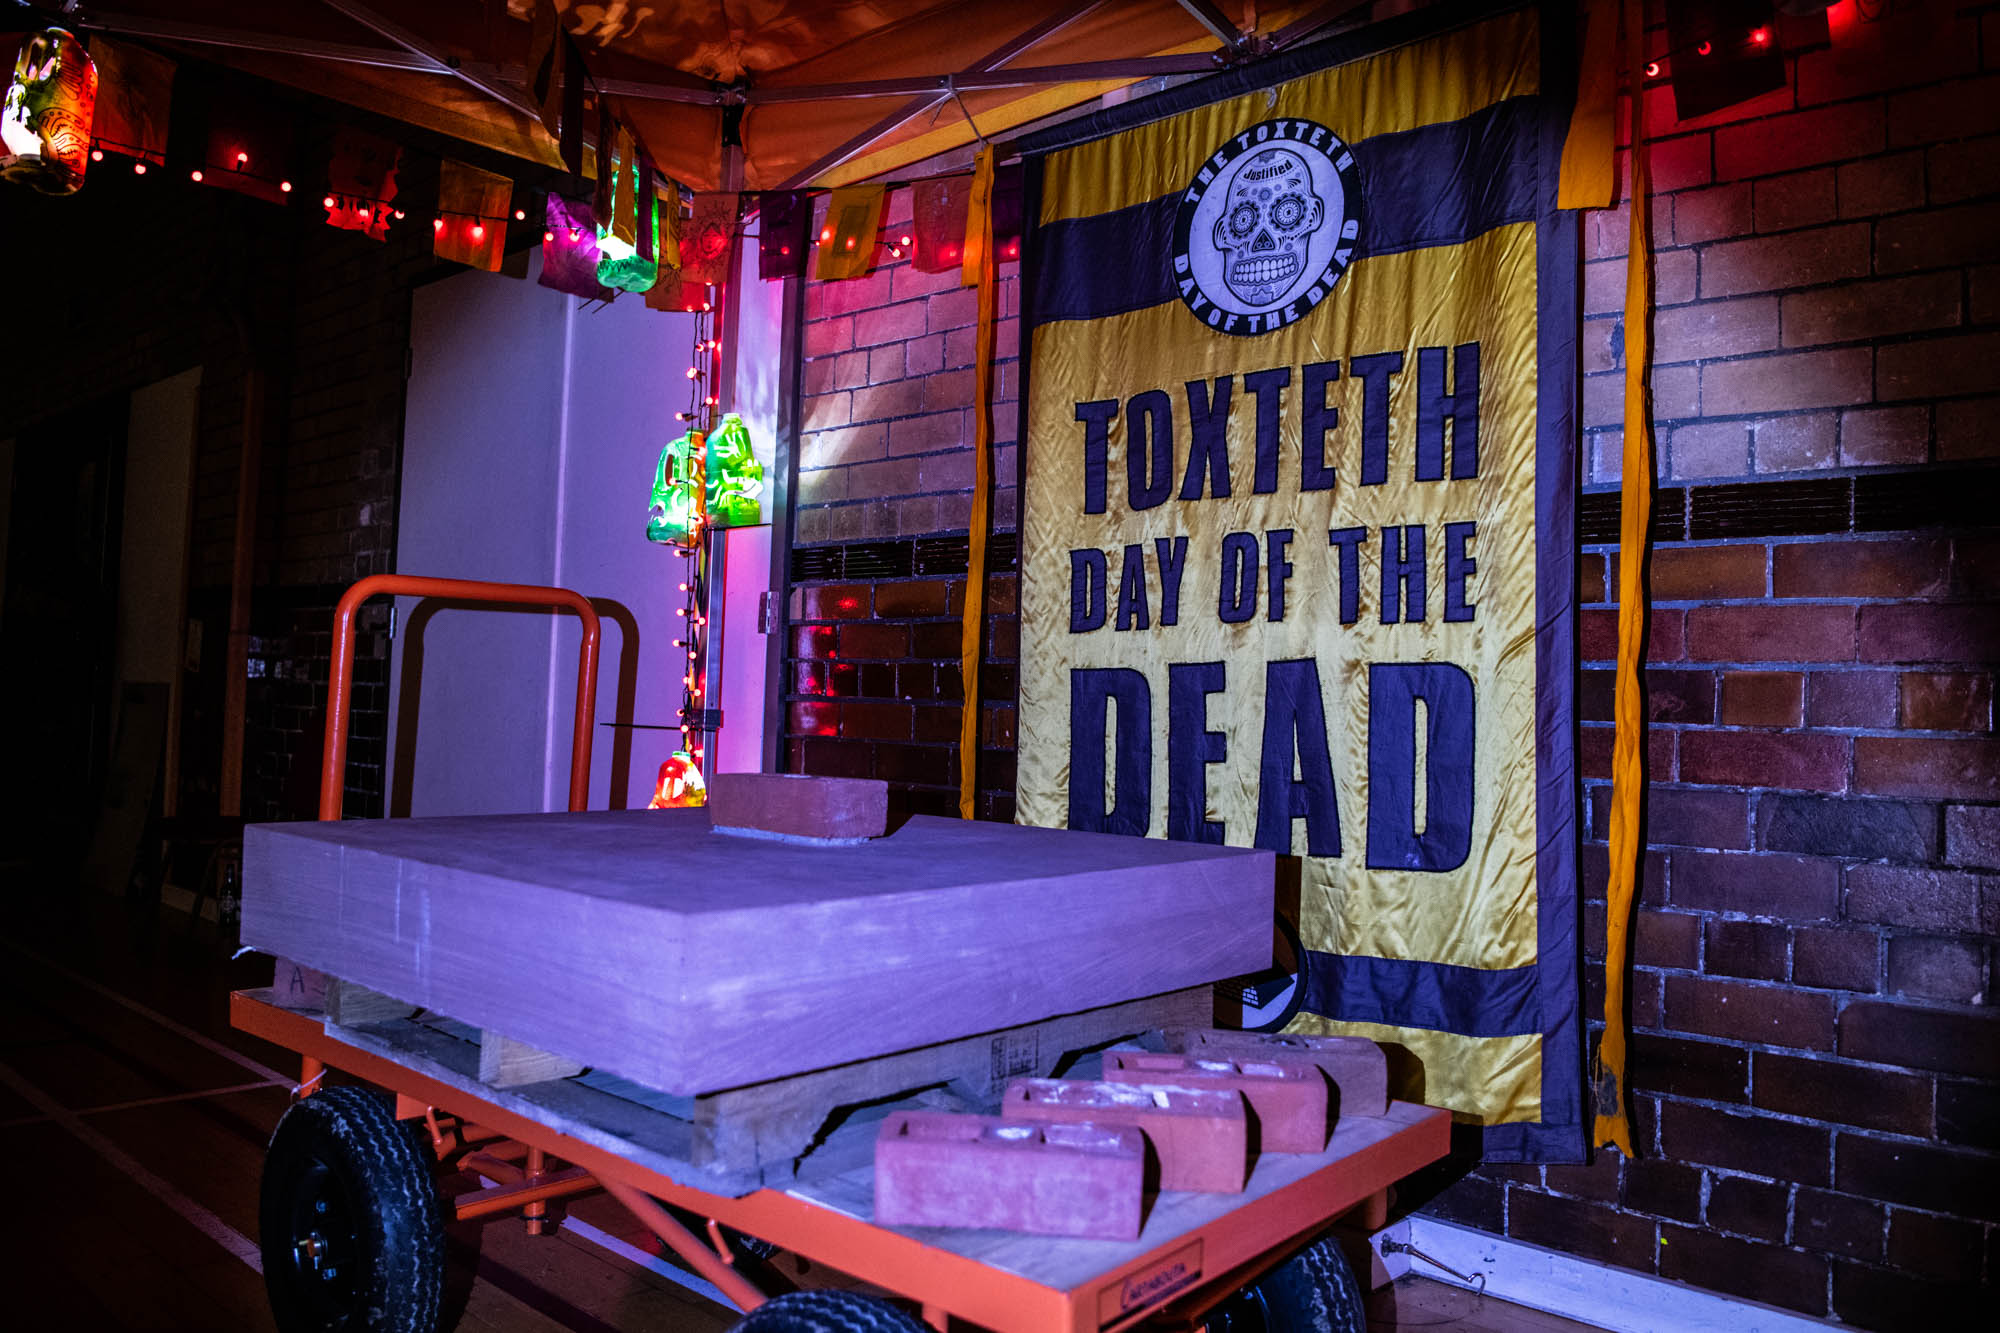 Toxteth Day Of The Dead 2019